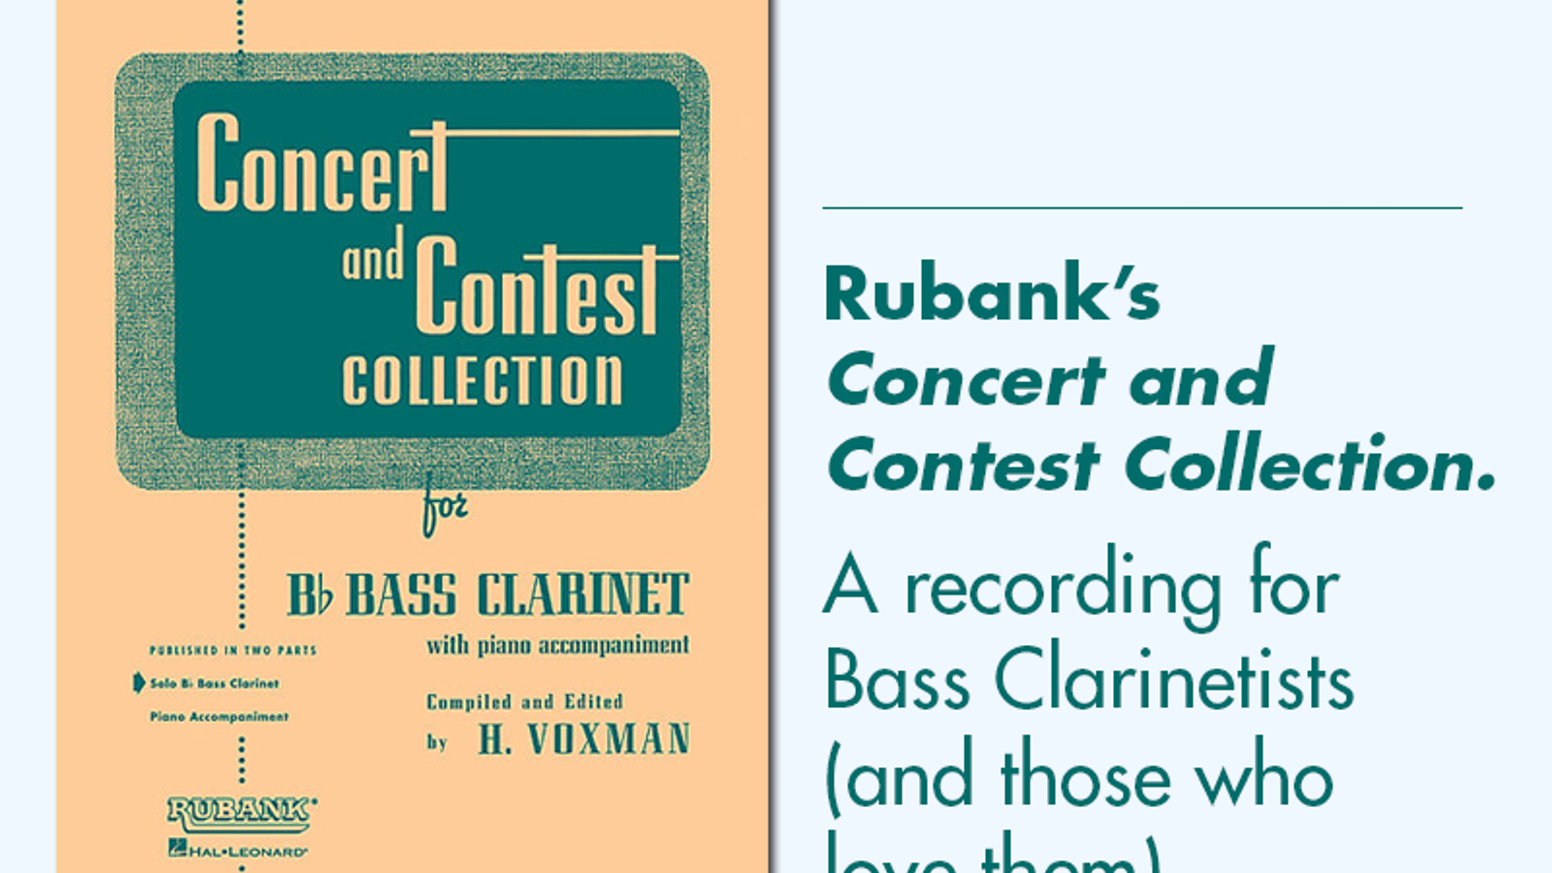 Recording the Concert & Contest Collection for Bass Clarinet by